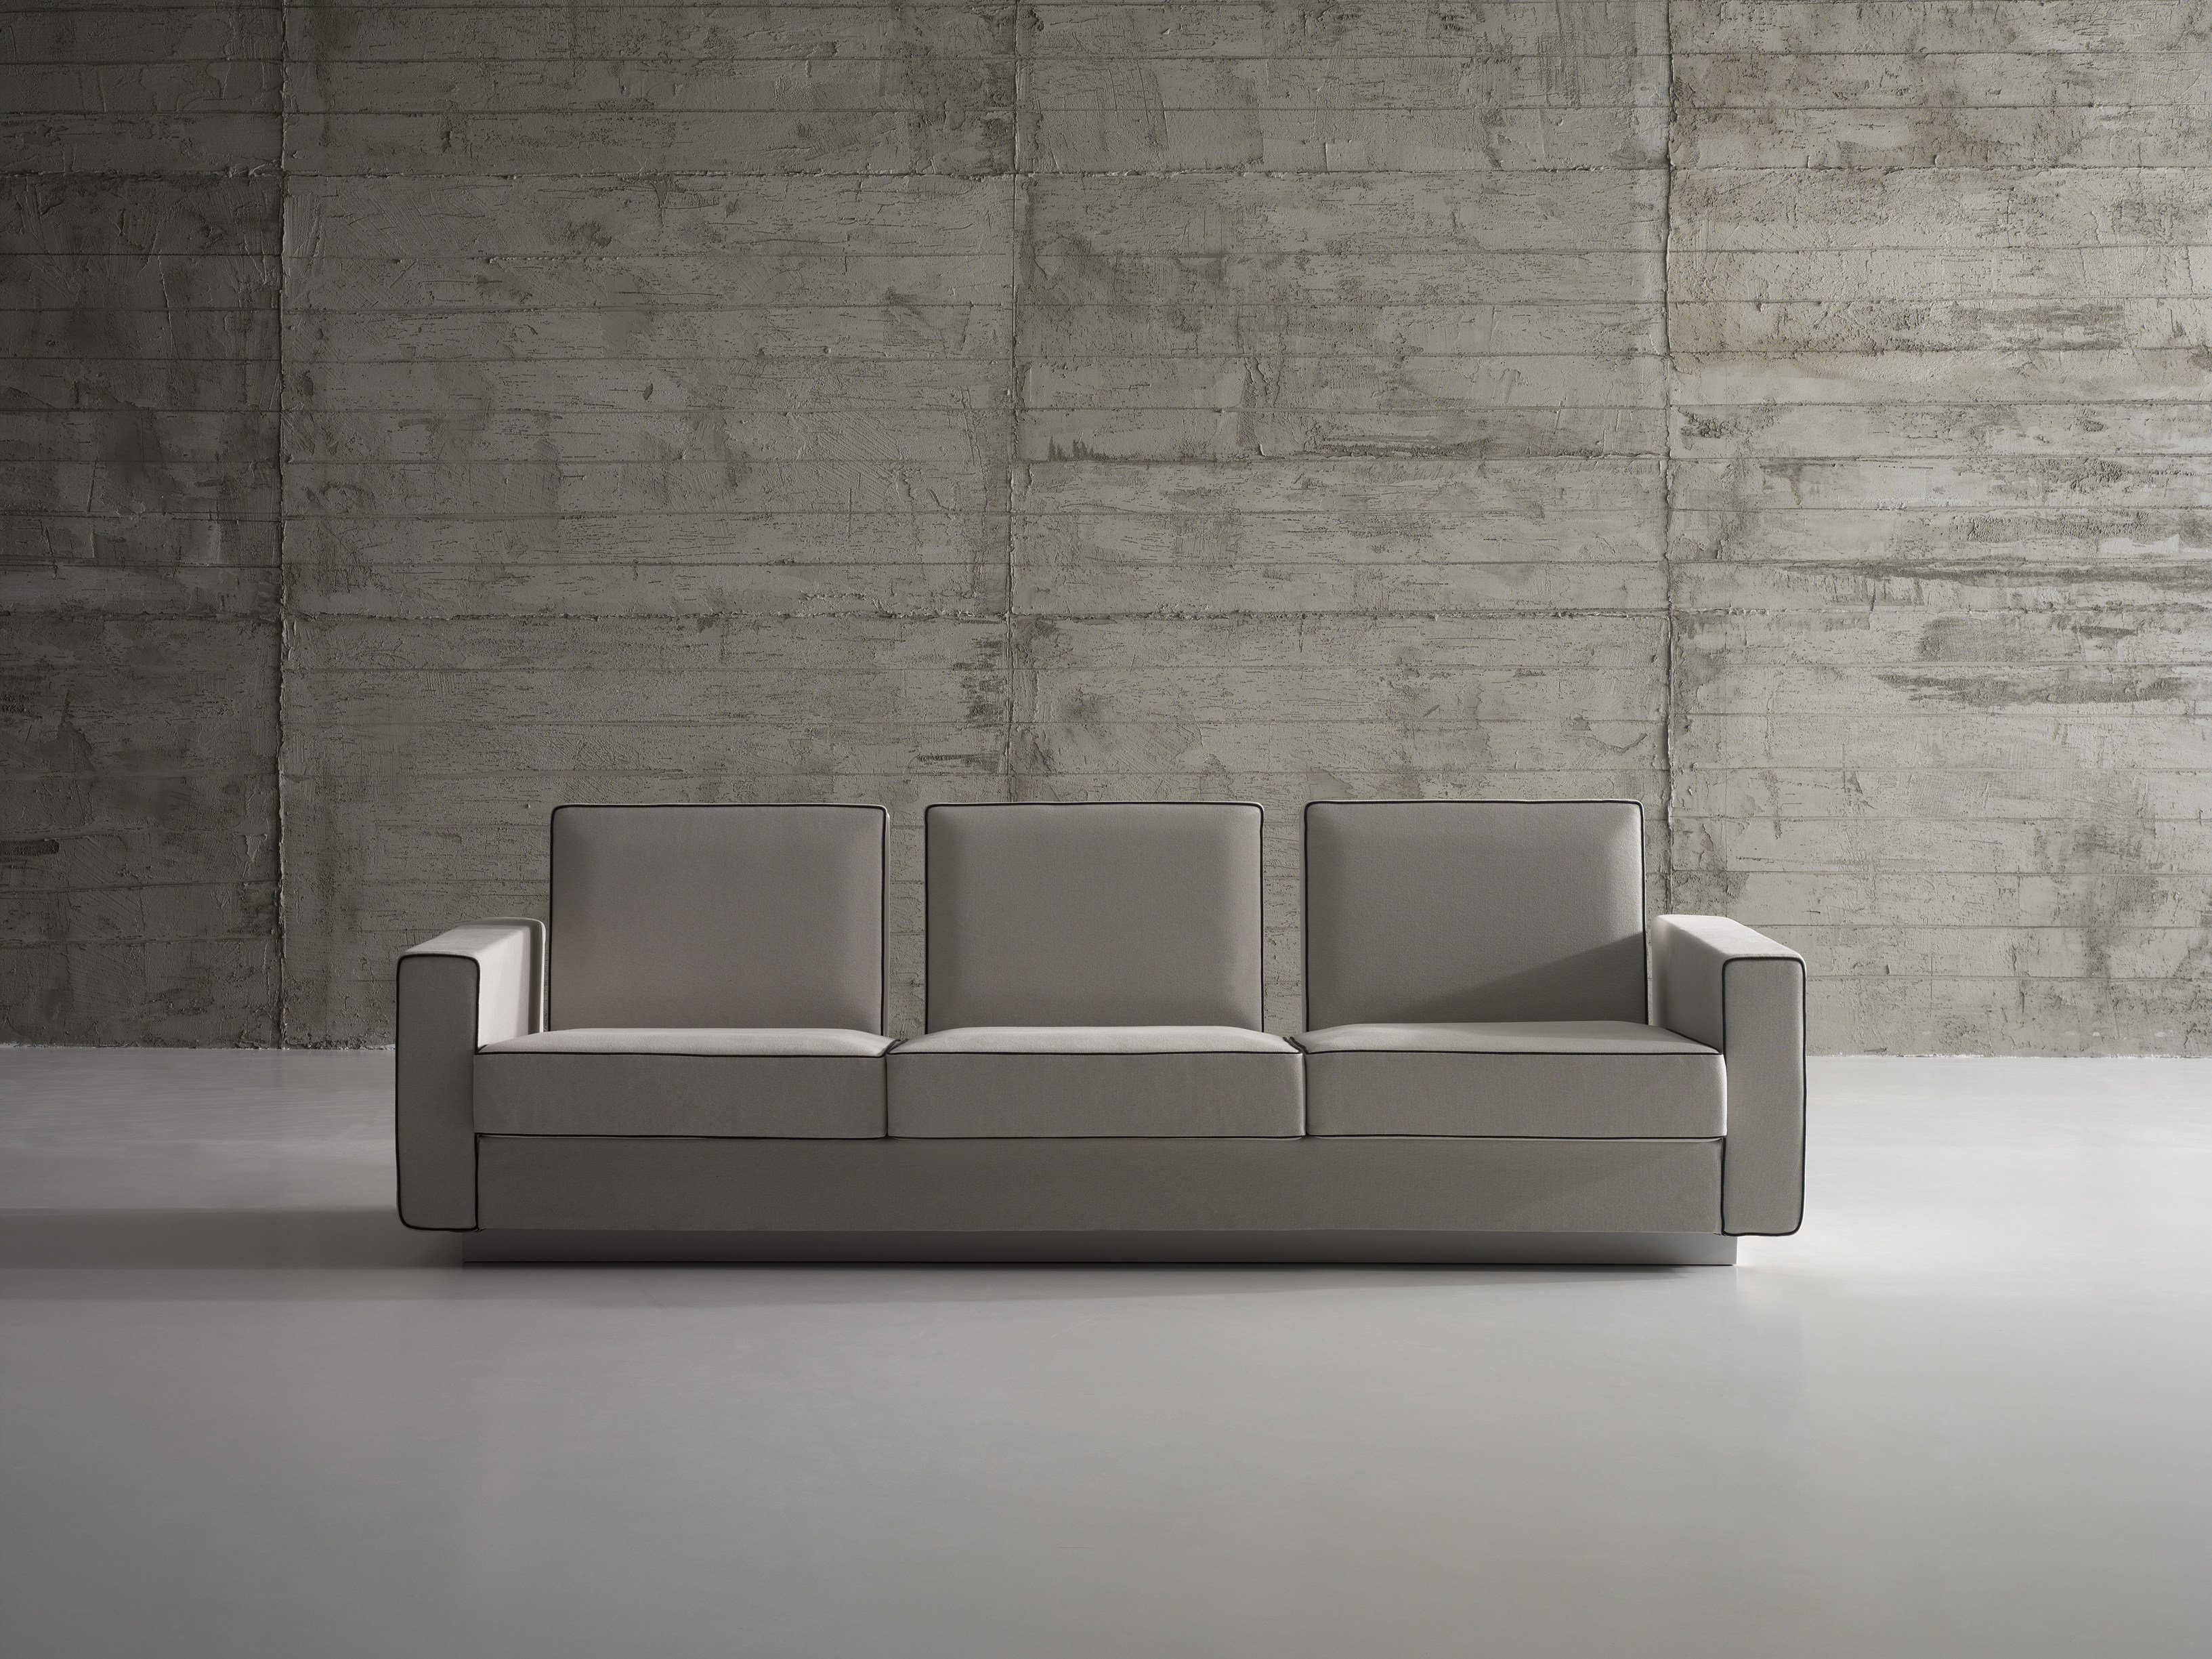 Modular sofa MODULAR SEATING SYSTEM Codici Collection By Matrix